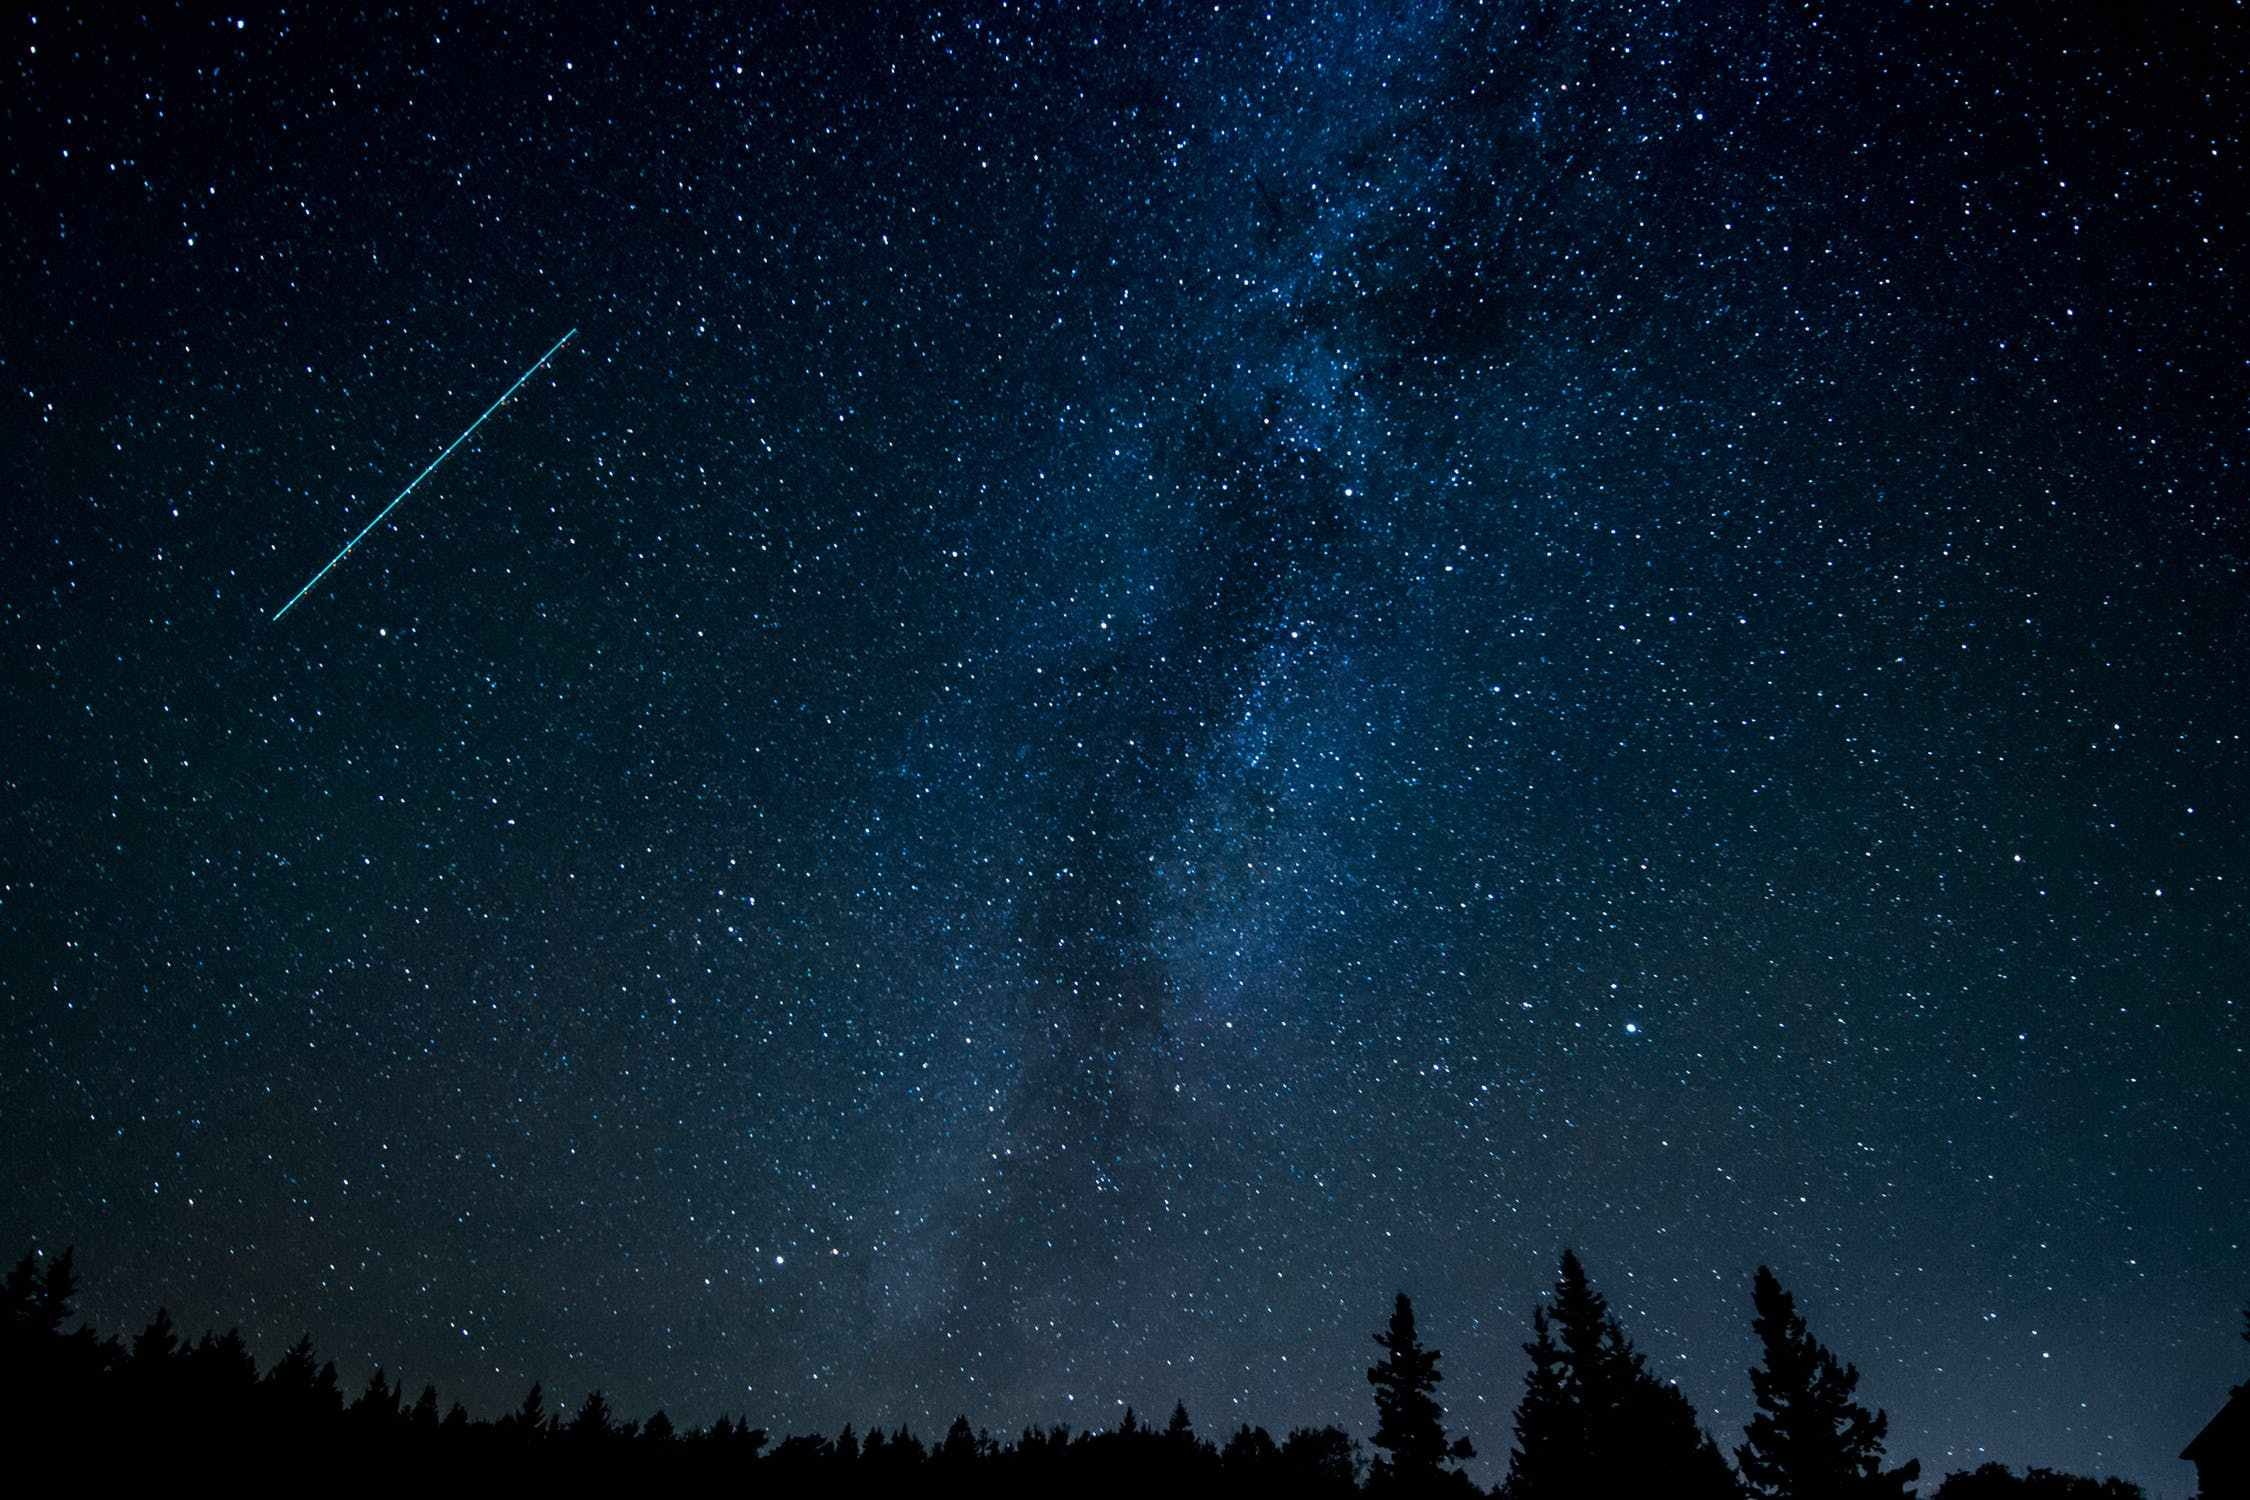 Lyrid meteor shower UK: will I be able to see shooting stars tonight?